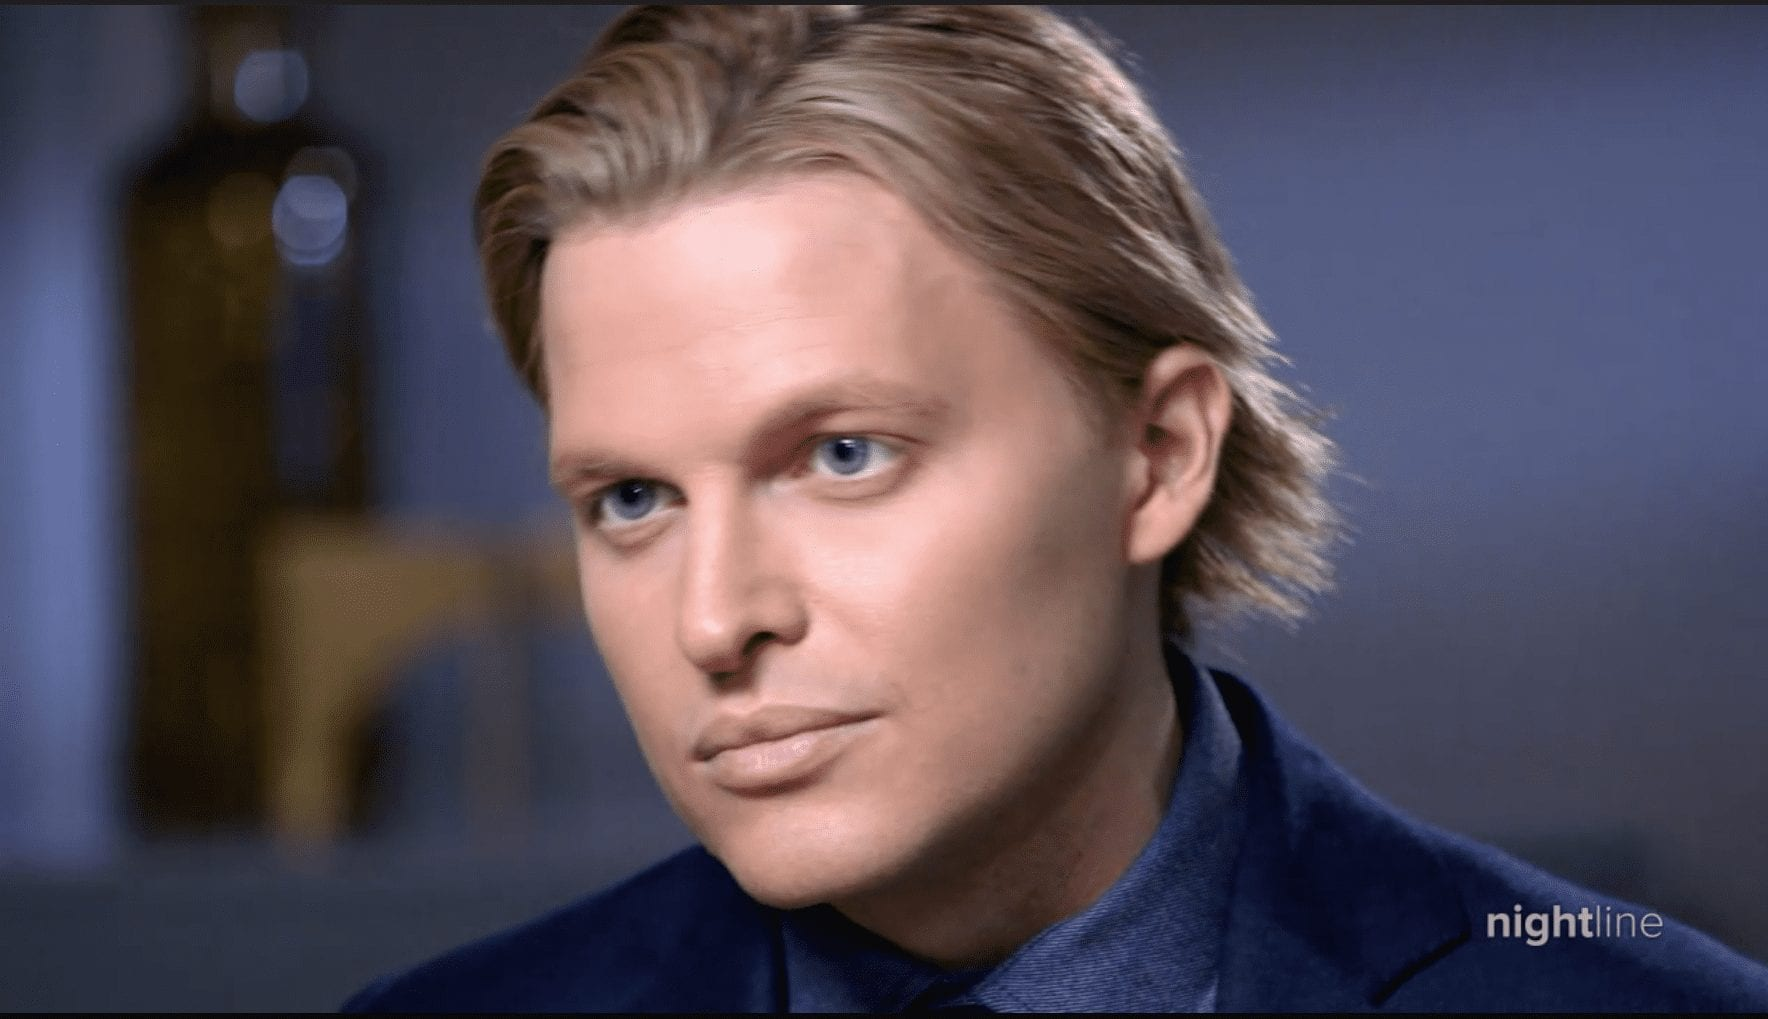 """""""I was able to tell this story because people were brave as hell. And they are still being brave as hell and refusing to shut up."""" - Ronan Farrow, author of Catch and Kill, speaking on an October 2019 episode of """"ABC News Nightline""""."""